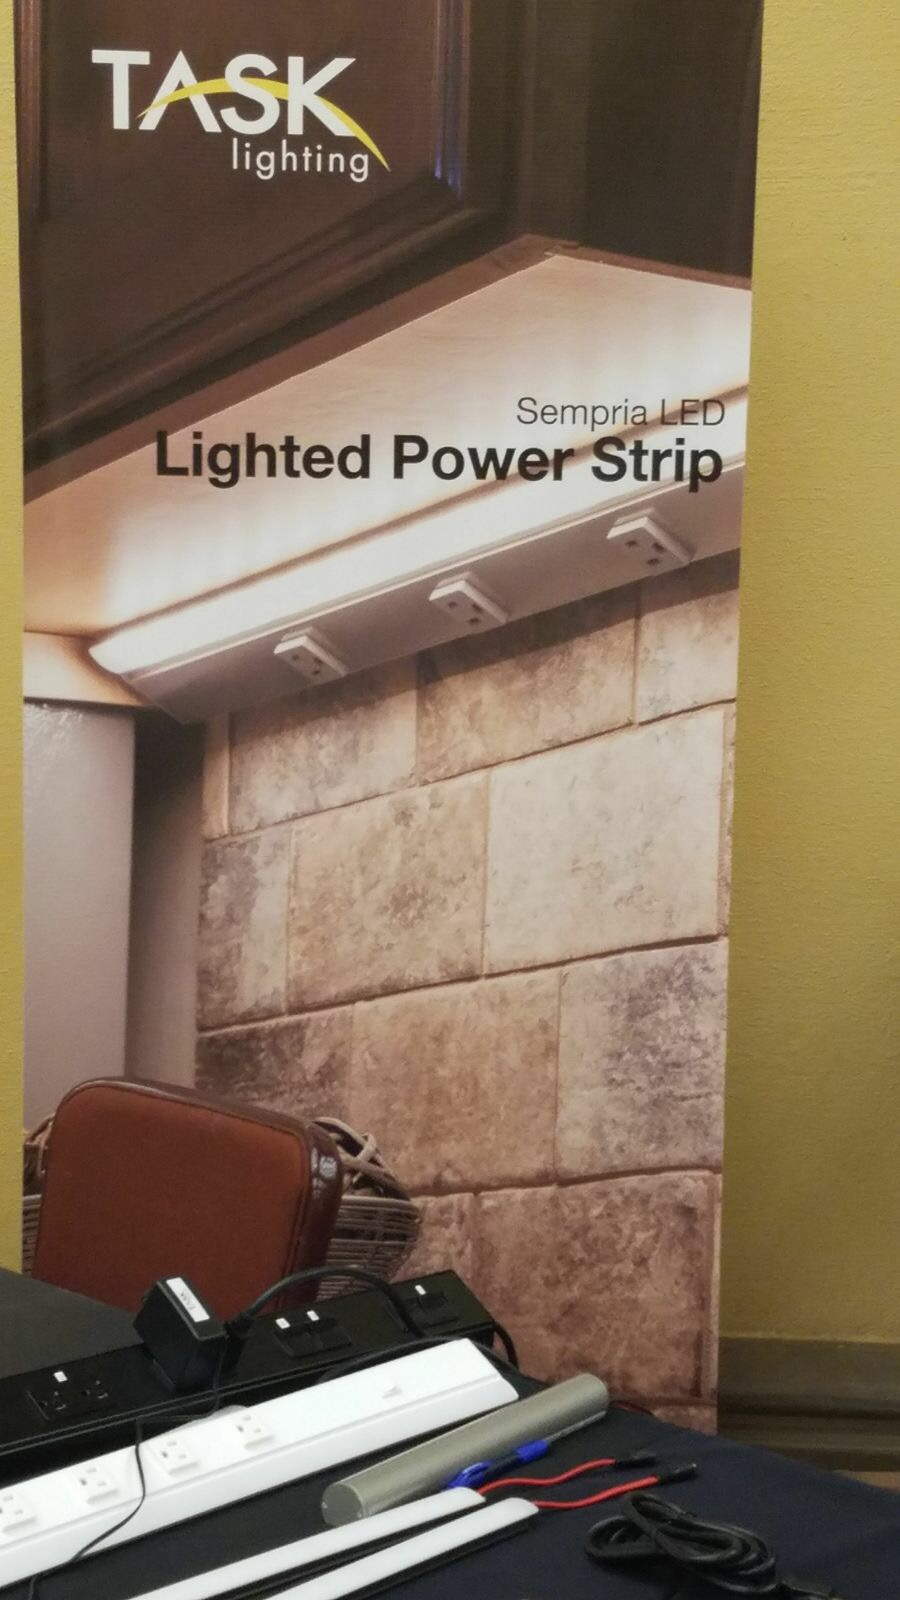 Task Lighting lighted power strip displayed at SEN Fall 2017 Conference